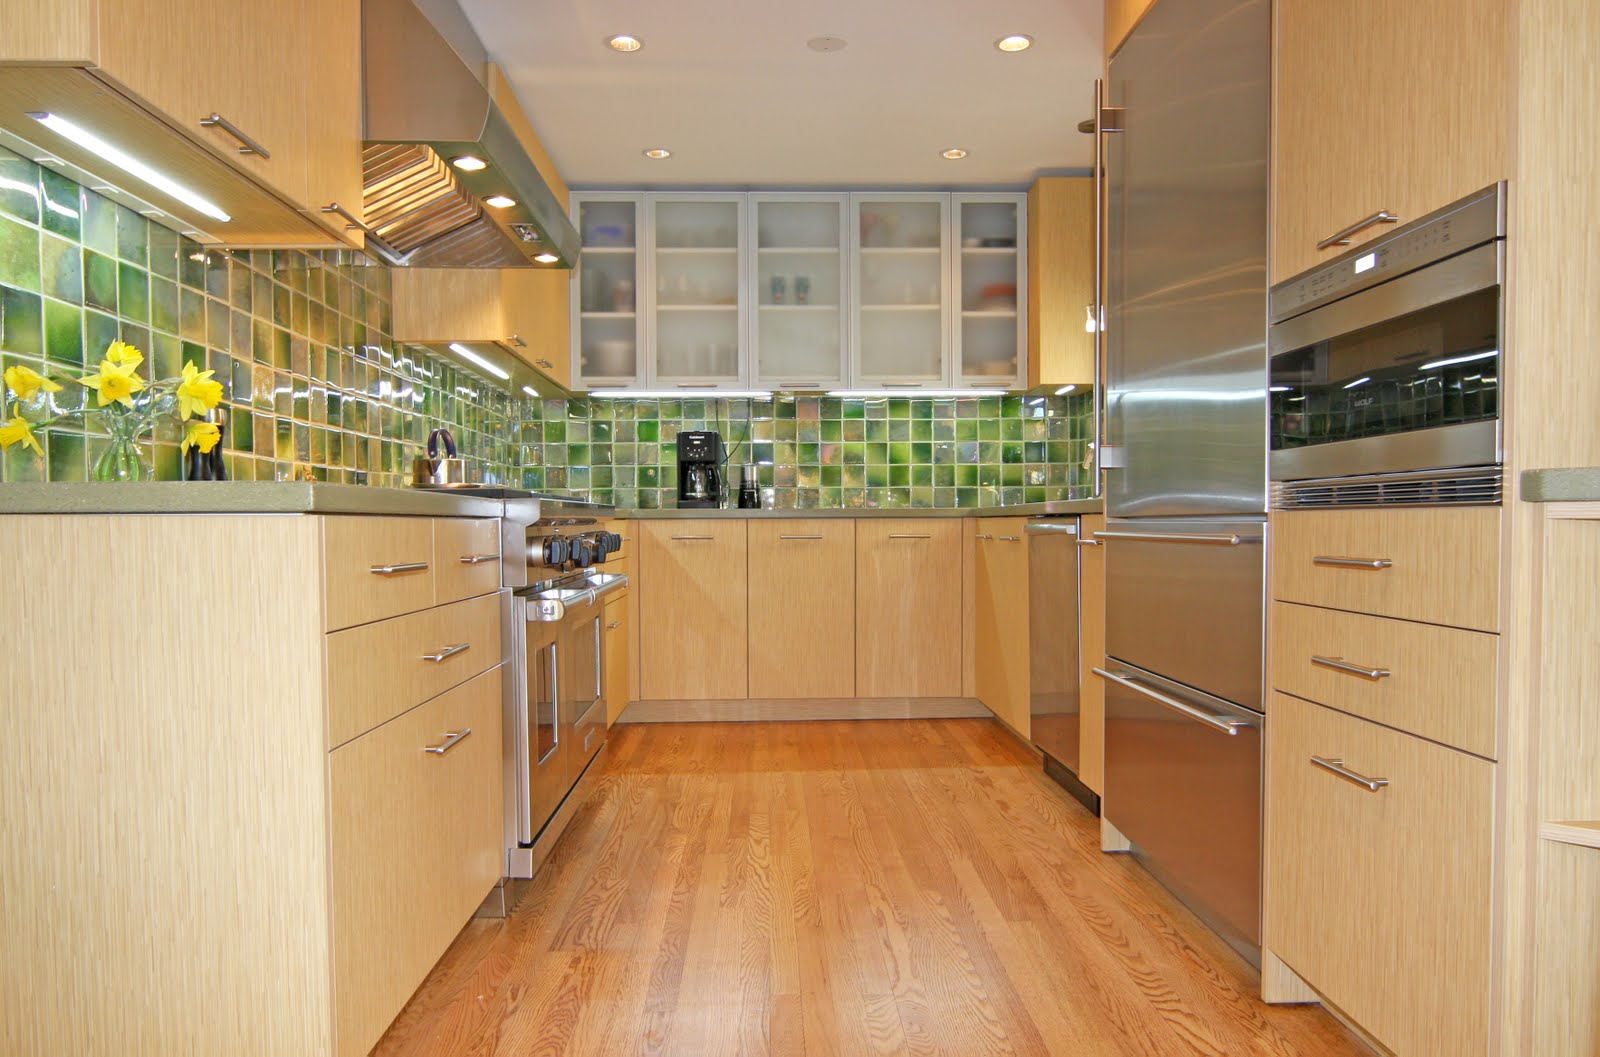 3ccchicago green remodel gourmet galley kitchen remodel for Tiny galley kitchen ideas